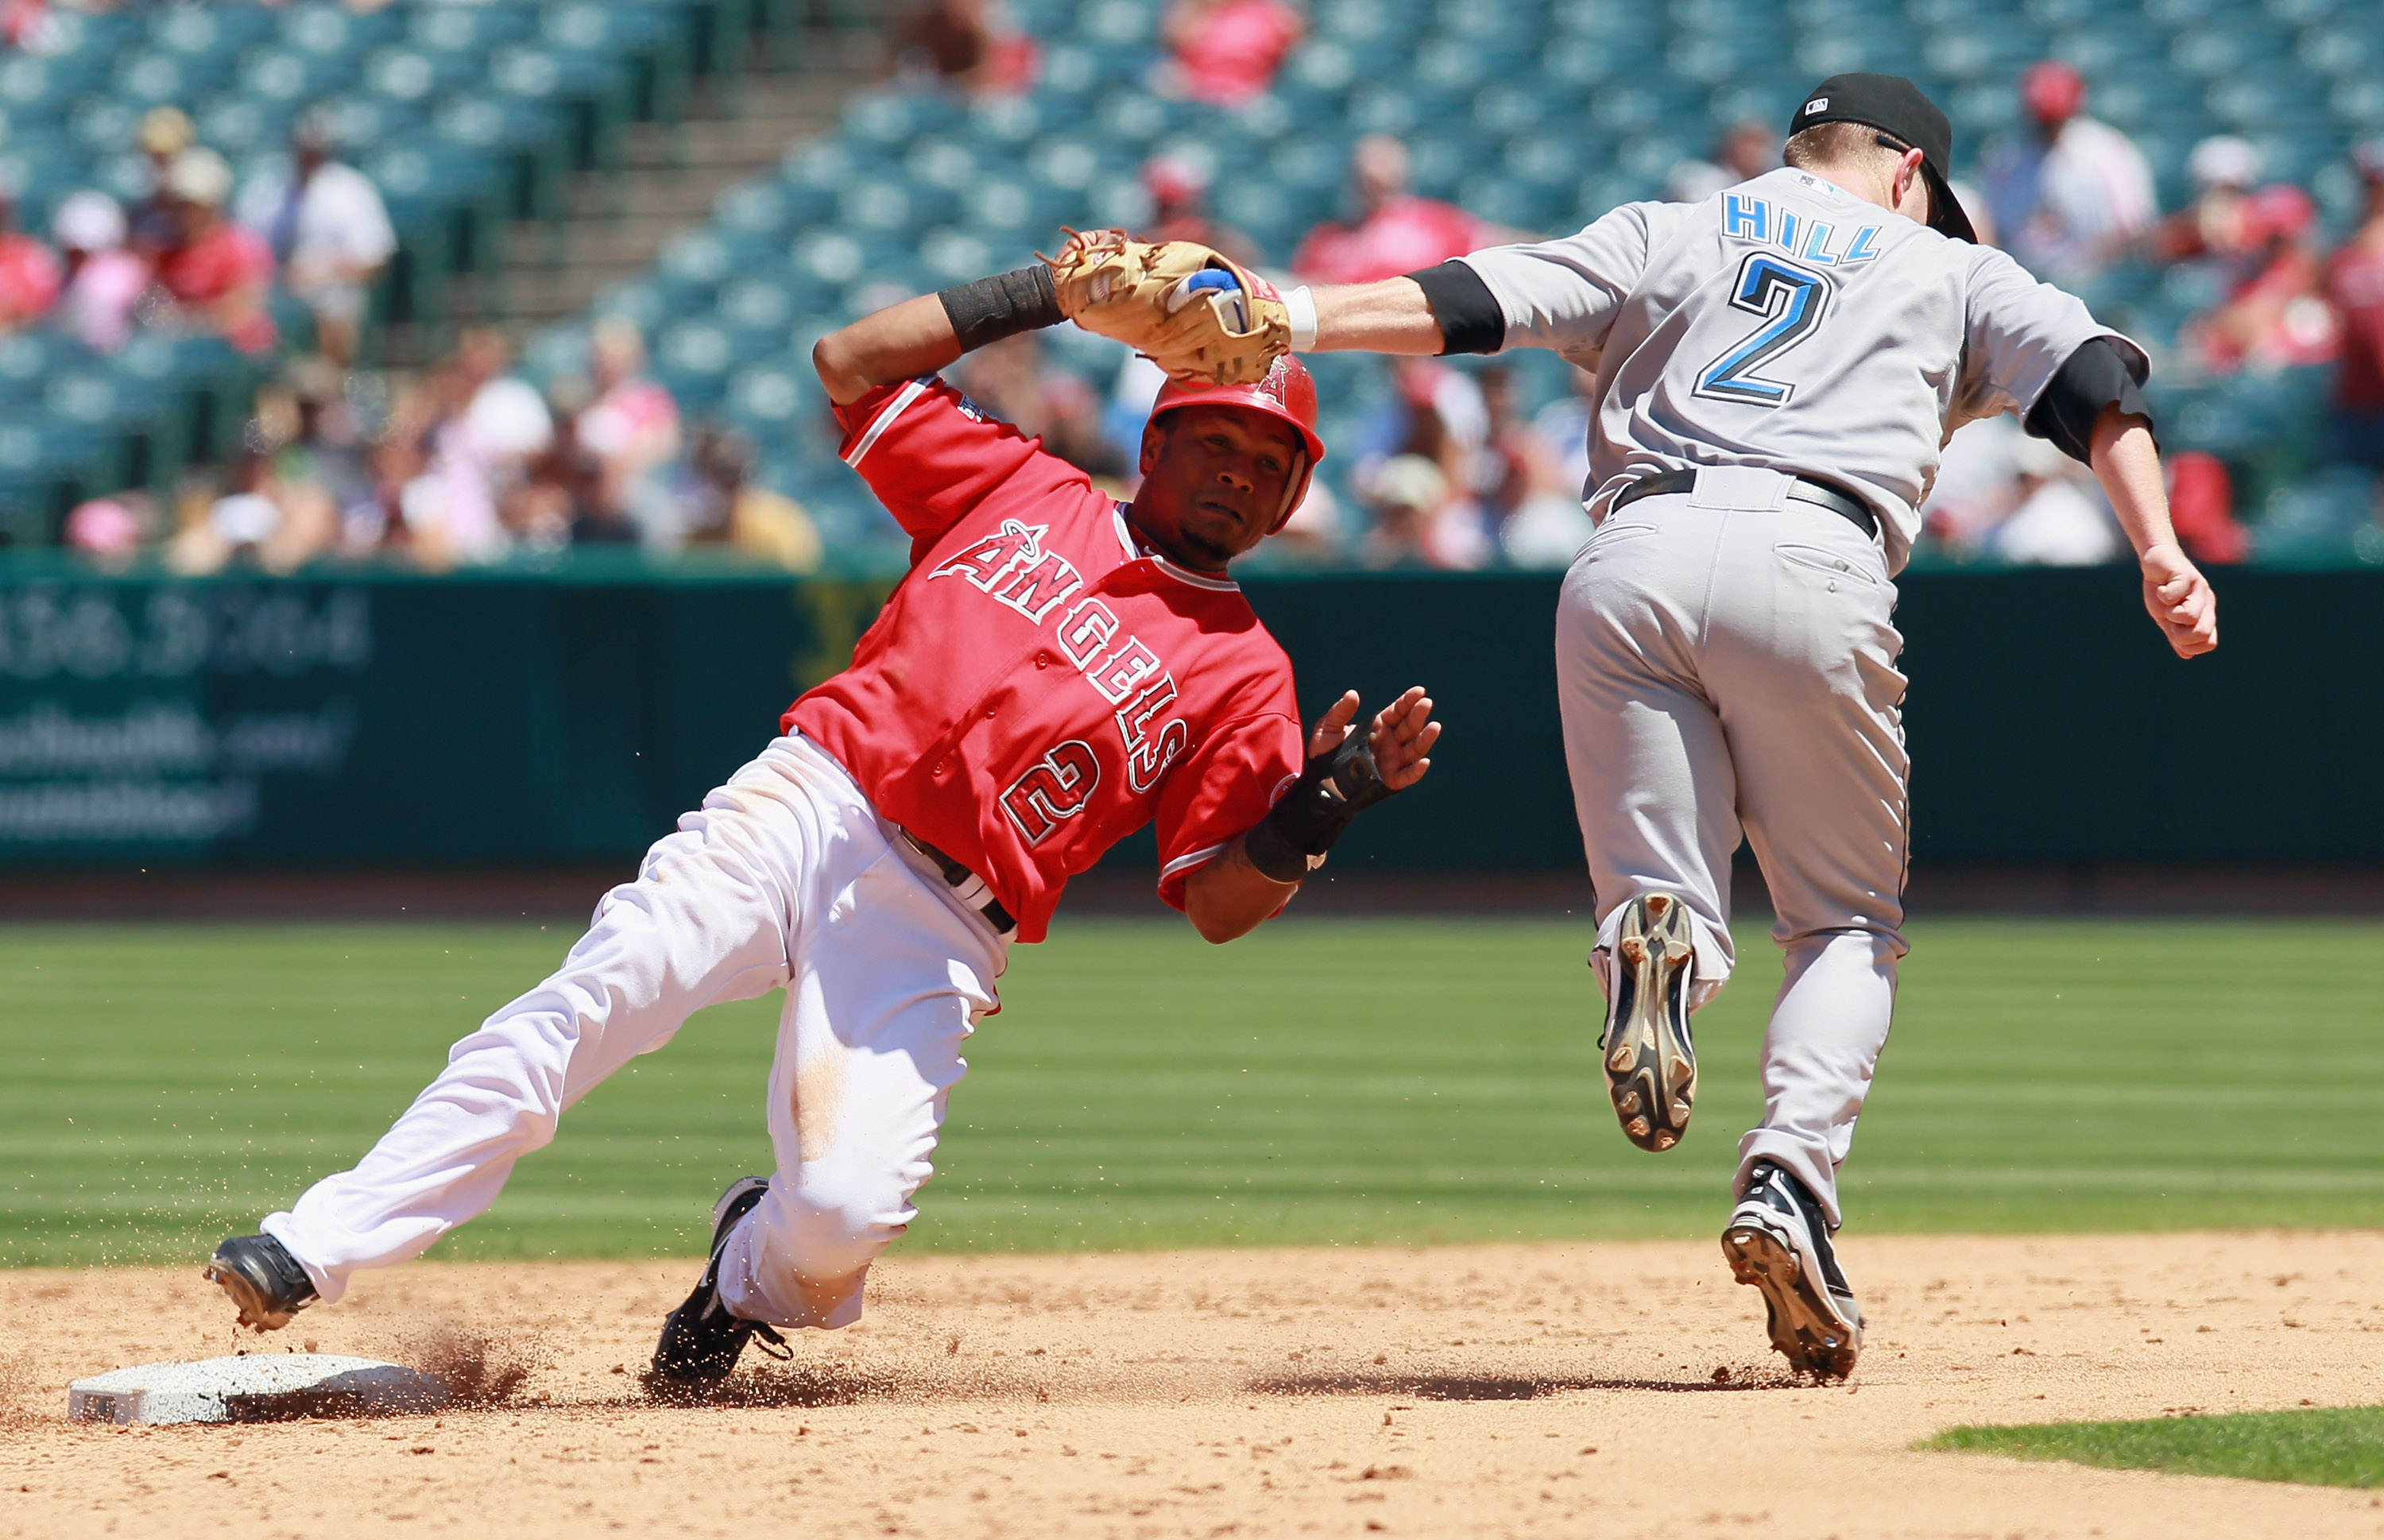 ANAHEIM, CA - AUGUST 15:  Erick Aybar #2 of the Los Angeles Angels of Anaheim is tagged out at second base by second baseman Aaron Hill #2 of the Toronto Blue Jays on a steal attempt in the fifth inning at Angel Stadium on August 15, 2010 in Anaheim, Cali